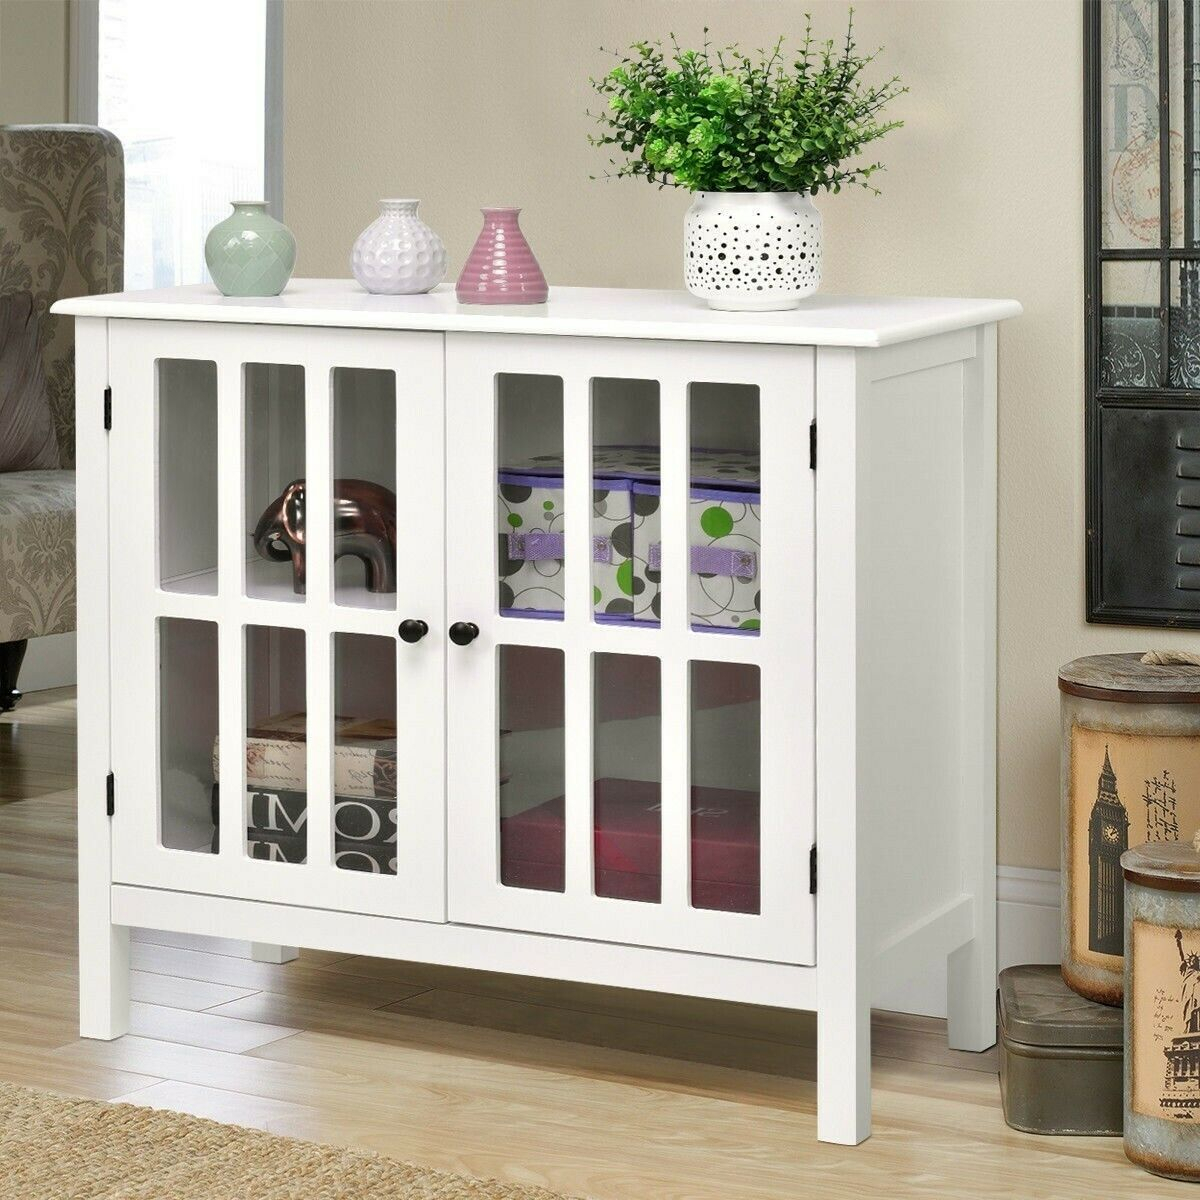 Details About Small Cabinet Floor Cupboard Wood Curio 2 Shelf Glass Door  Buffet Console Accent With Regard To Wooden Curio Buffets With Two Glass Doors (Photo 3 of 30)